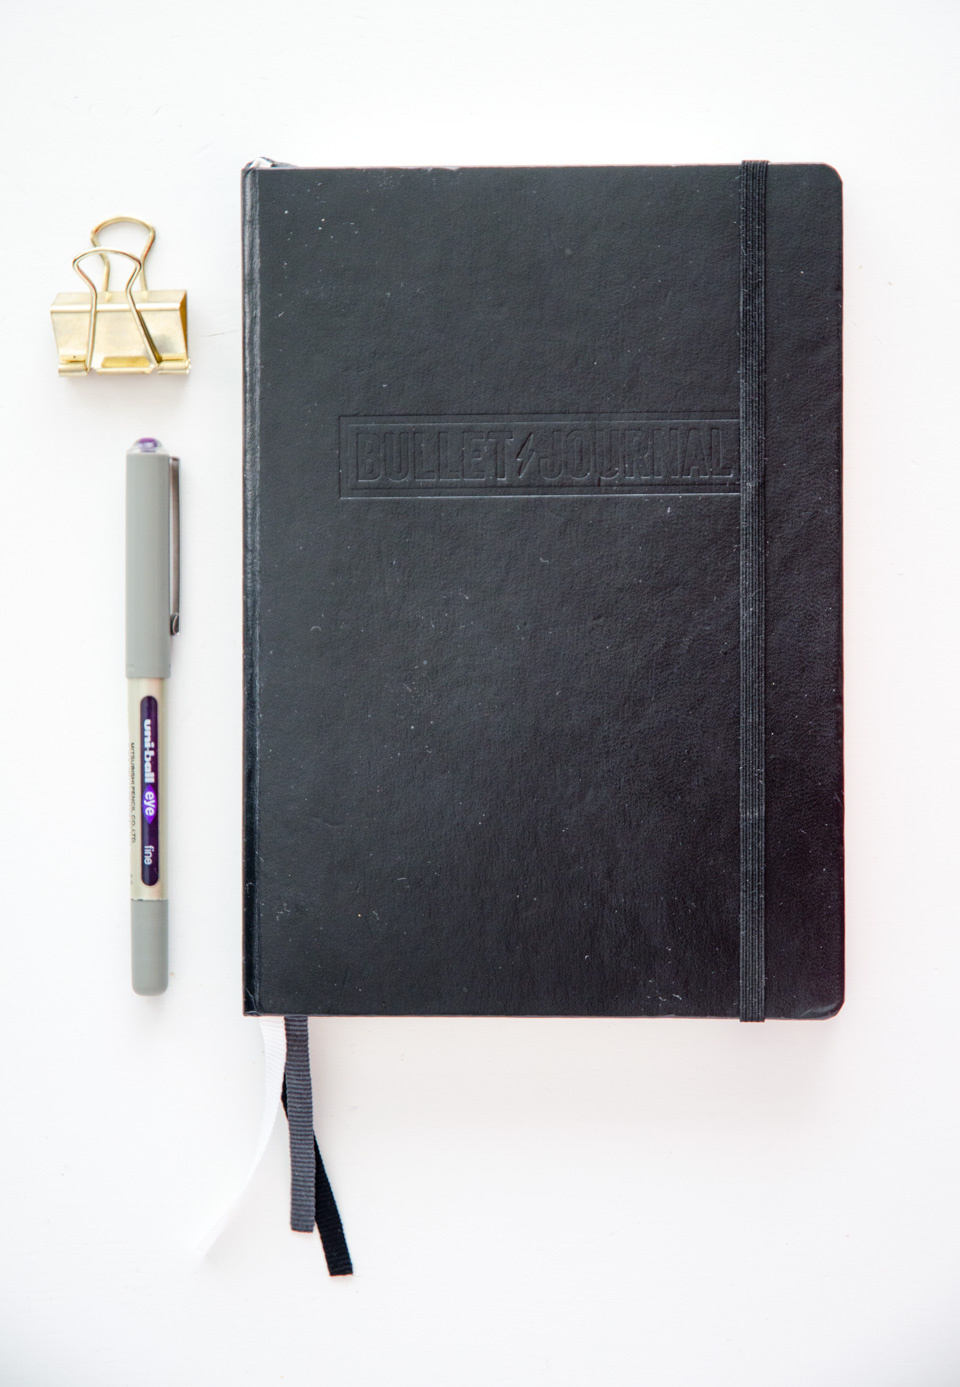 Bullet Journal by Leuchtturm | Review